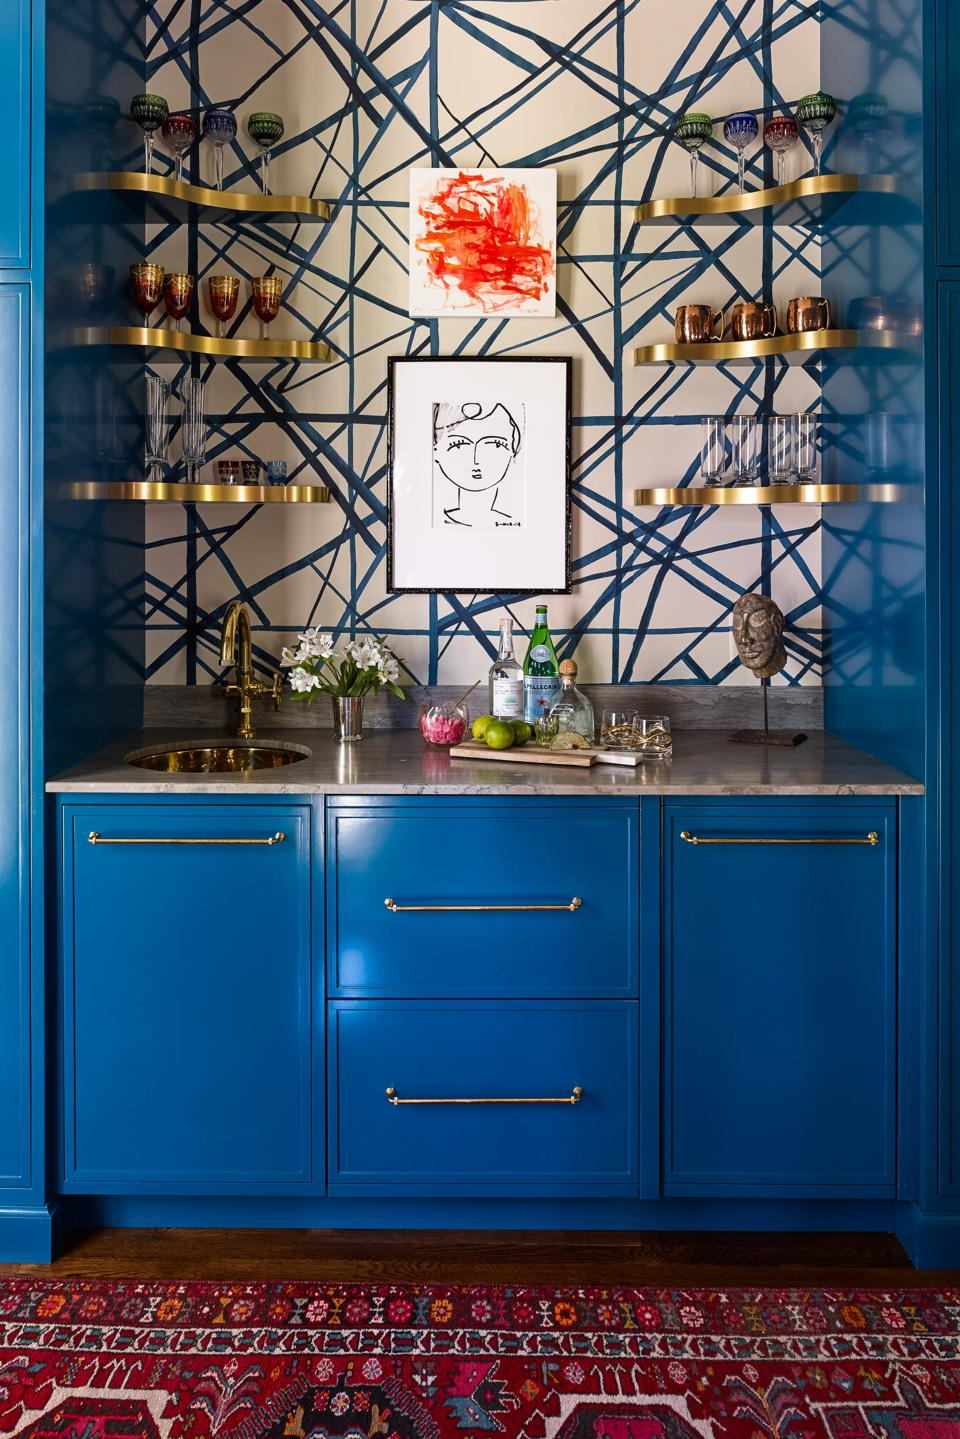 Home bar with blue cabinetry and metal hardware and gold shelving.